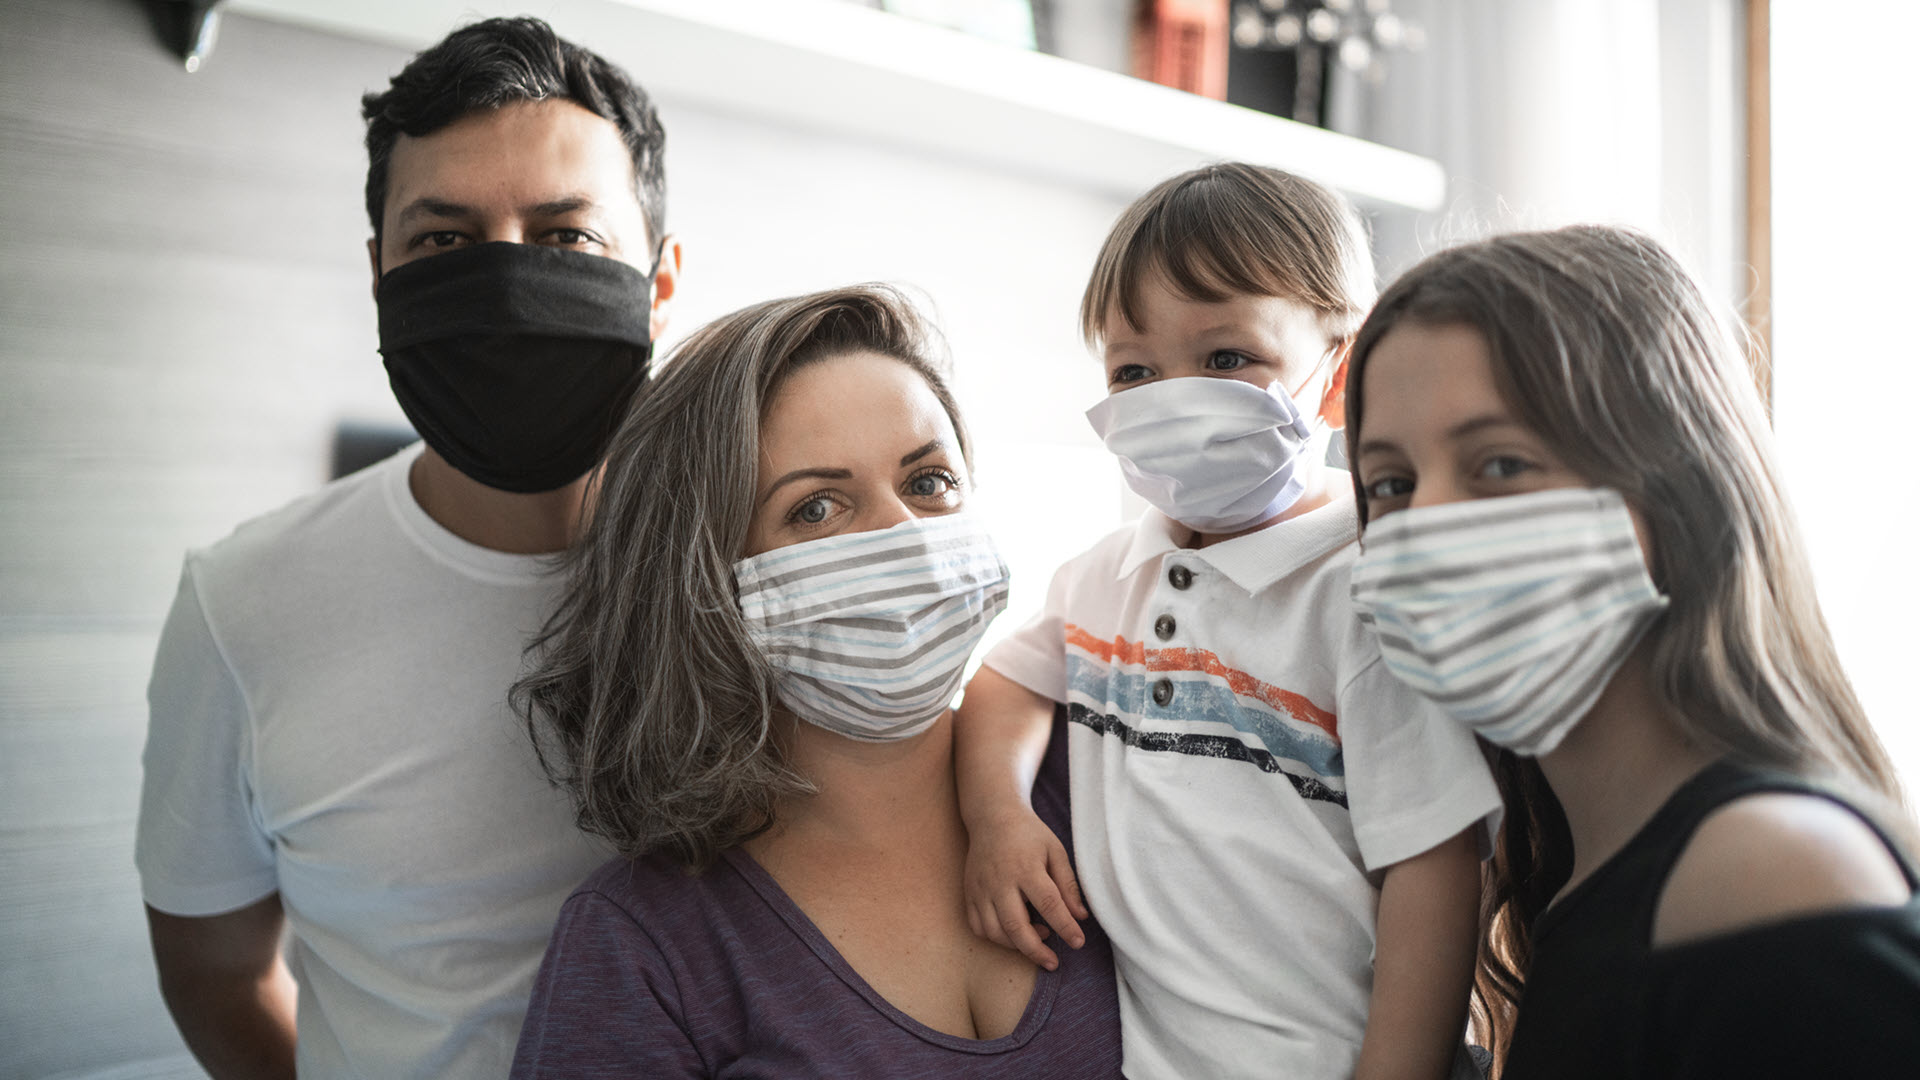 Family of four wearing masks staring attentively at the camera